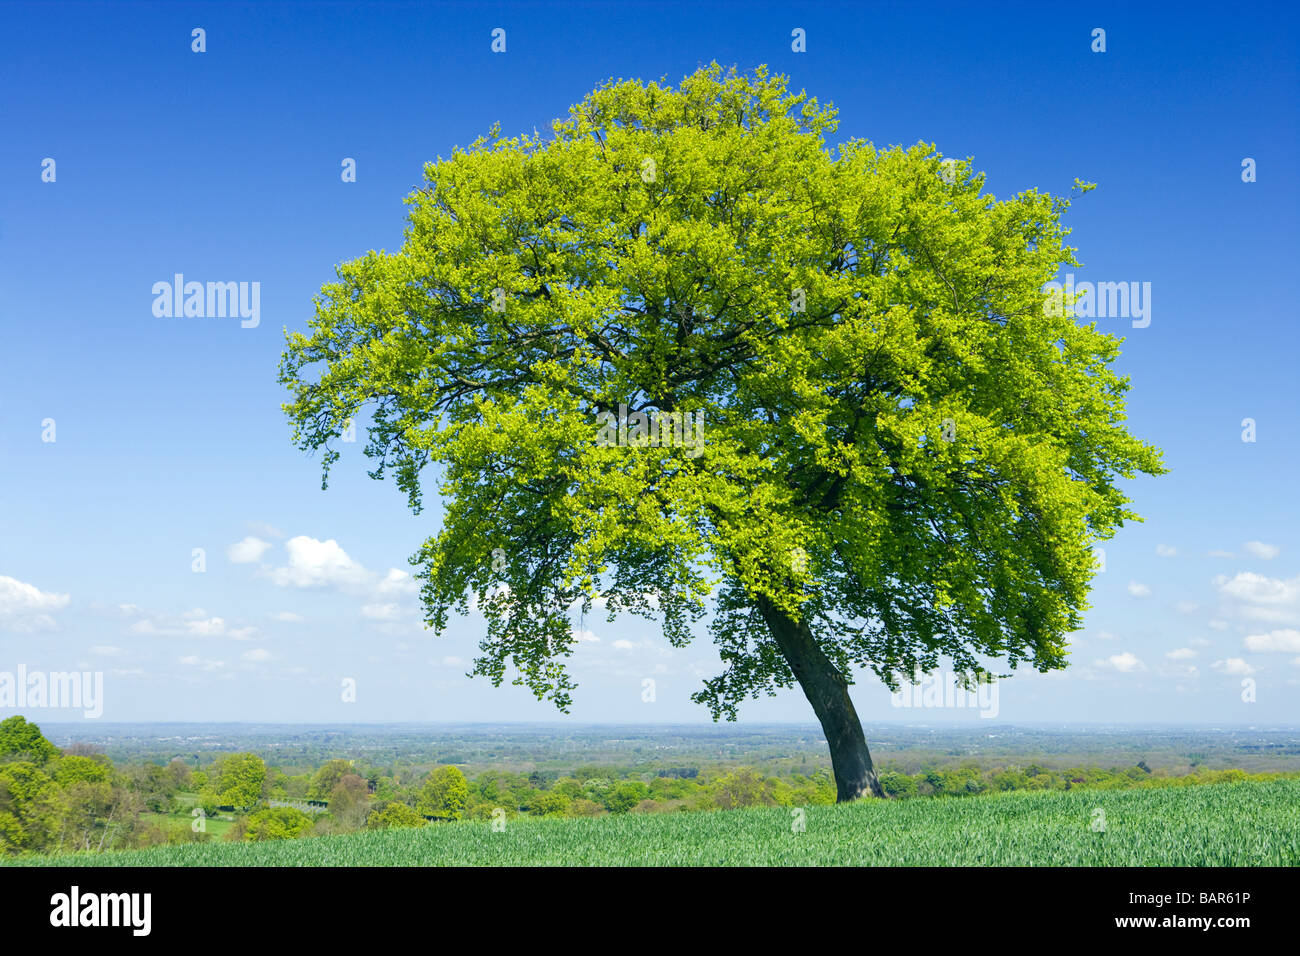 Lone beech tree in farm field. North Downs at Clandon, Surrey, UK. - Stock Image